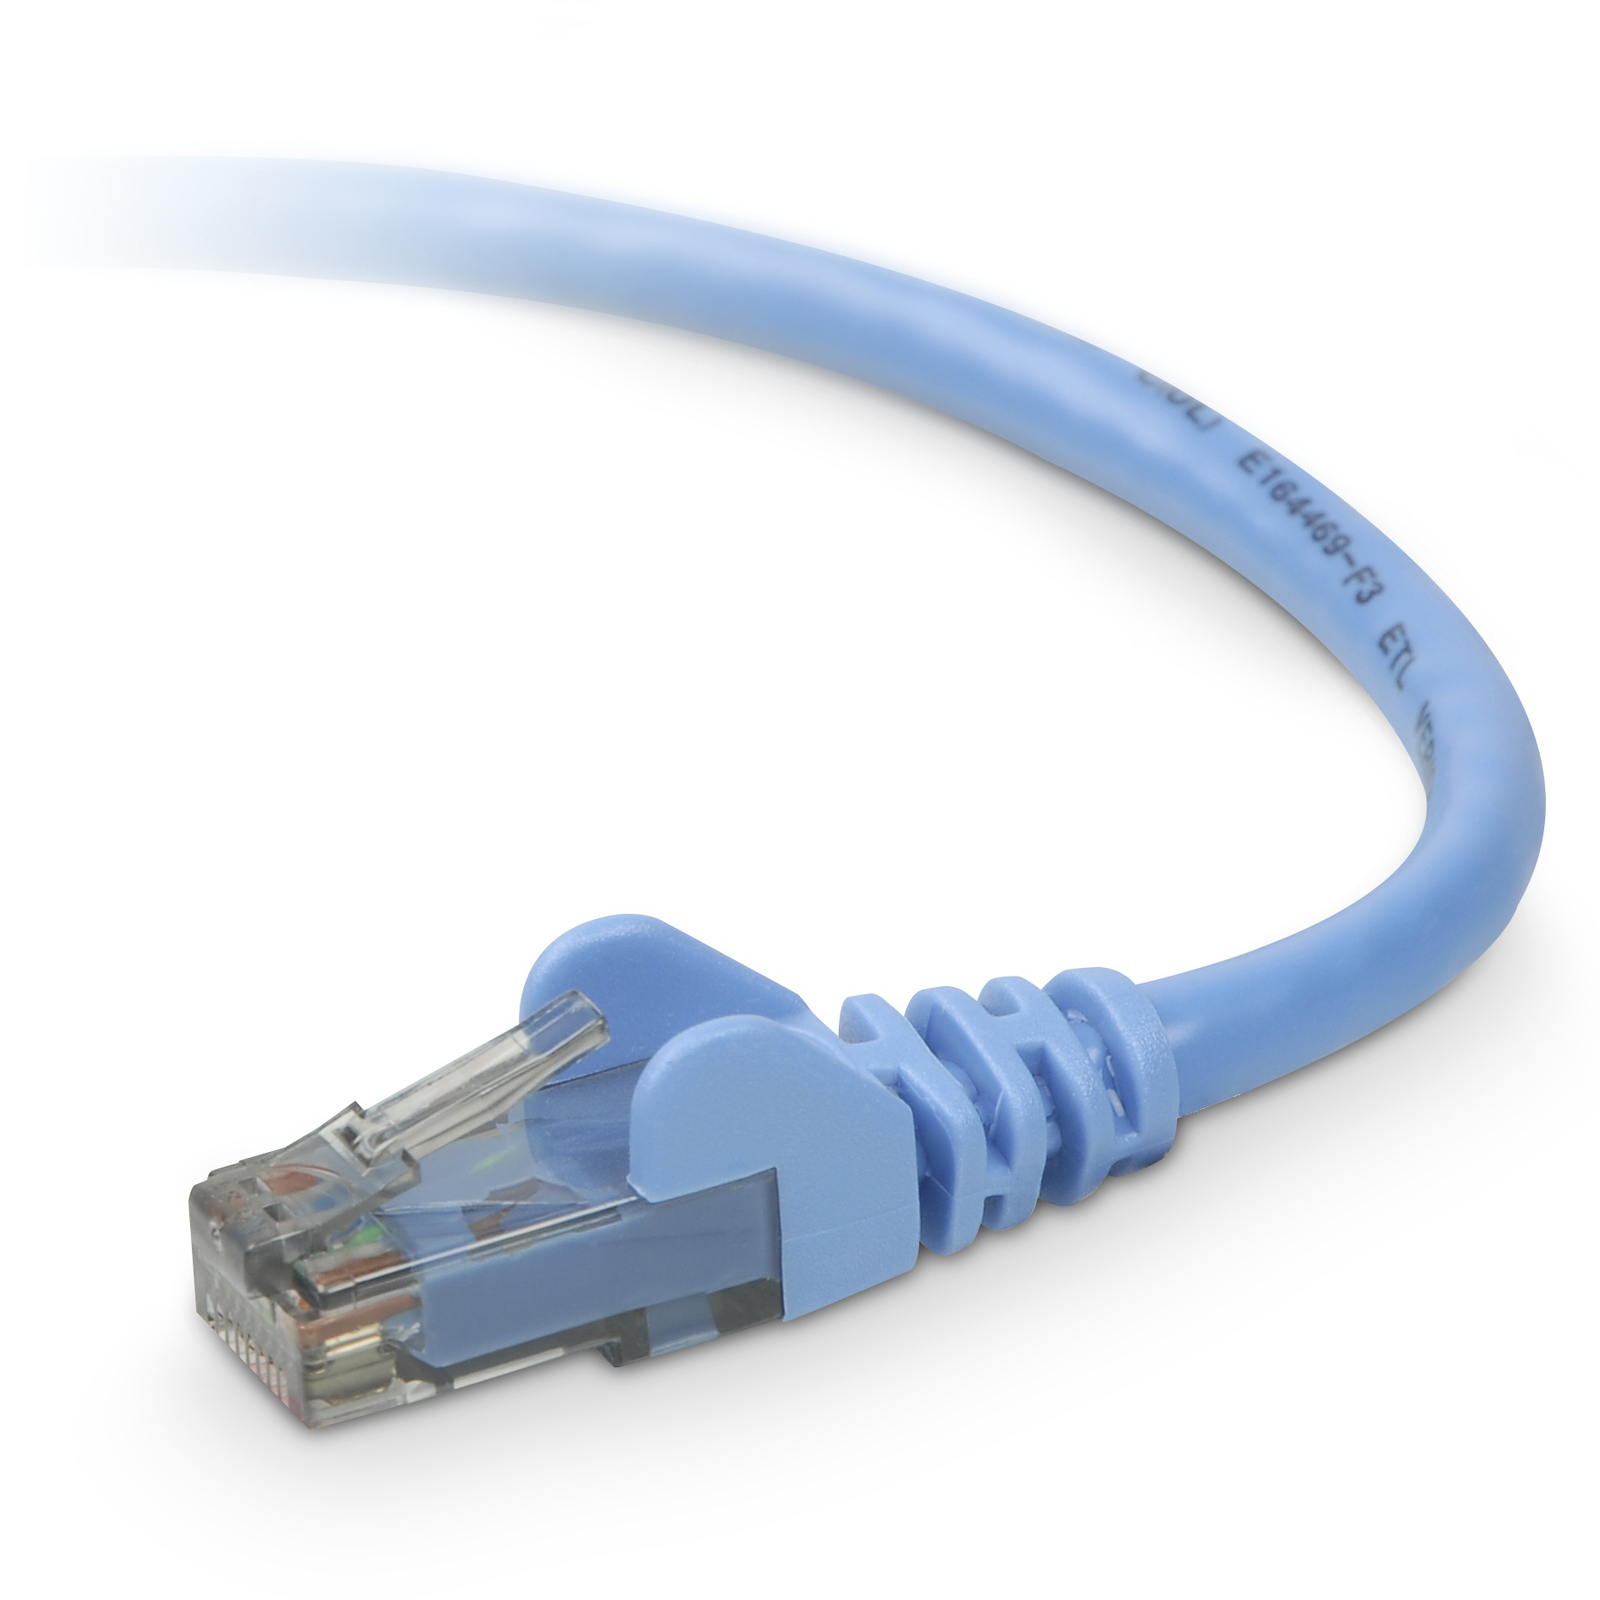 Belkin-Cat6 Patch Cable Snagless - 15m (Blue) image